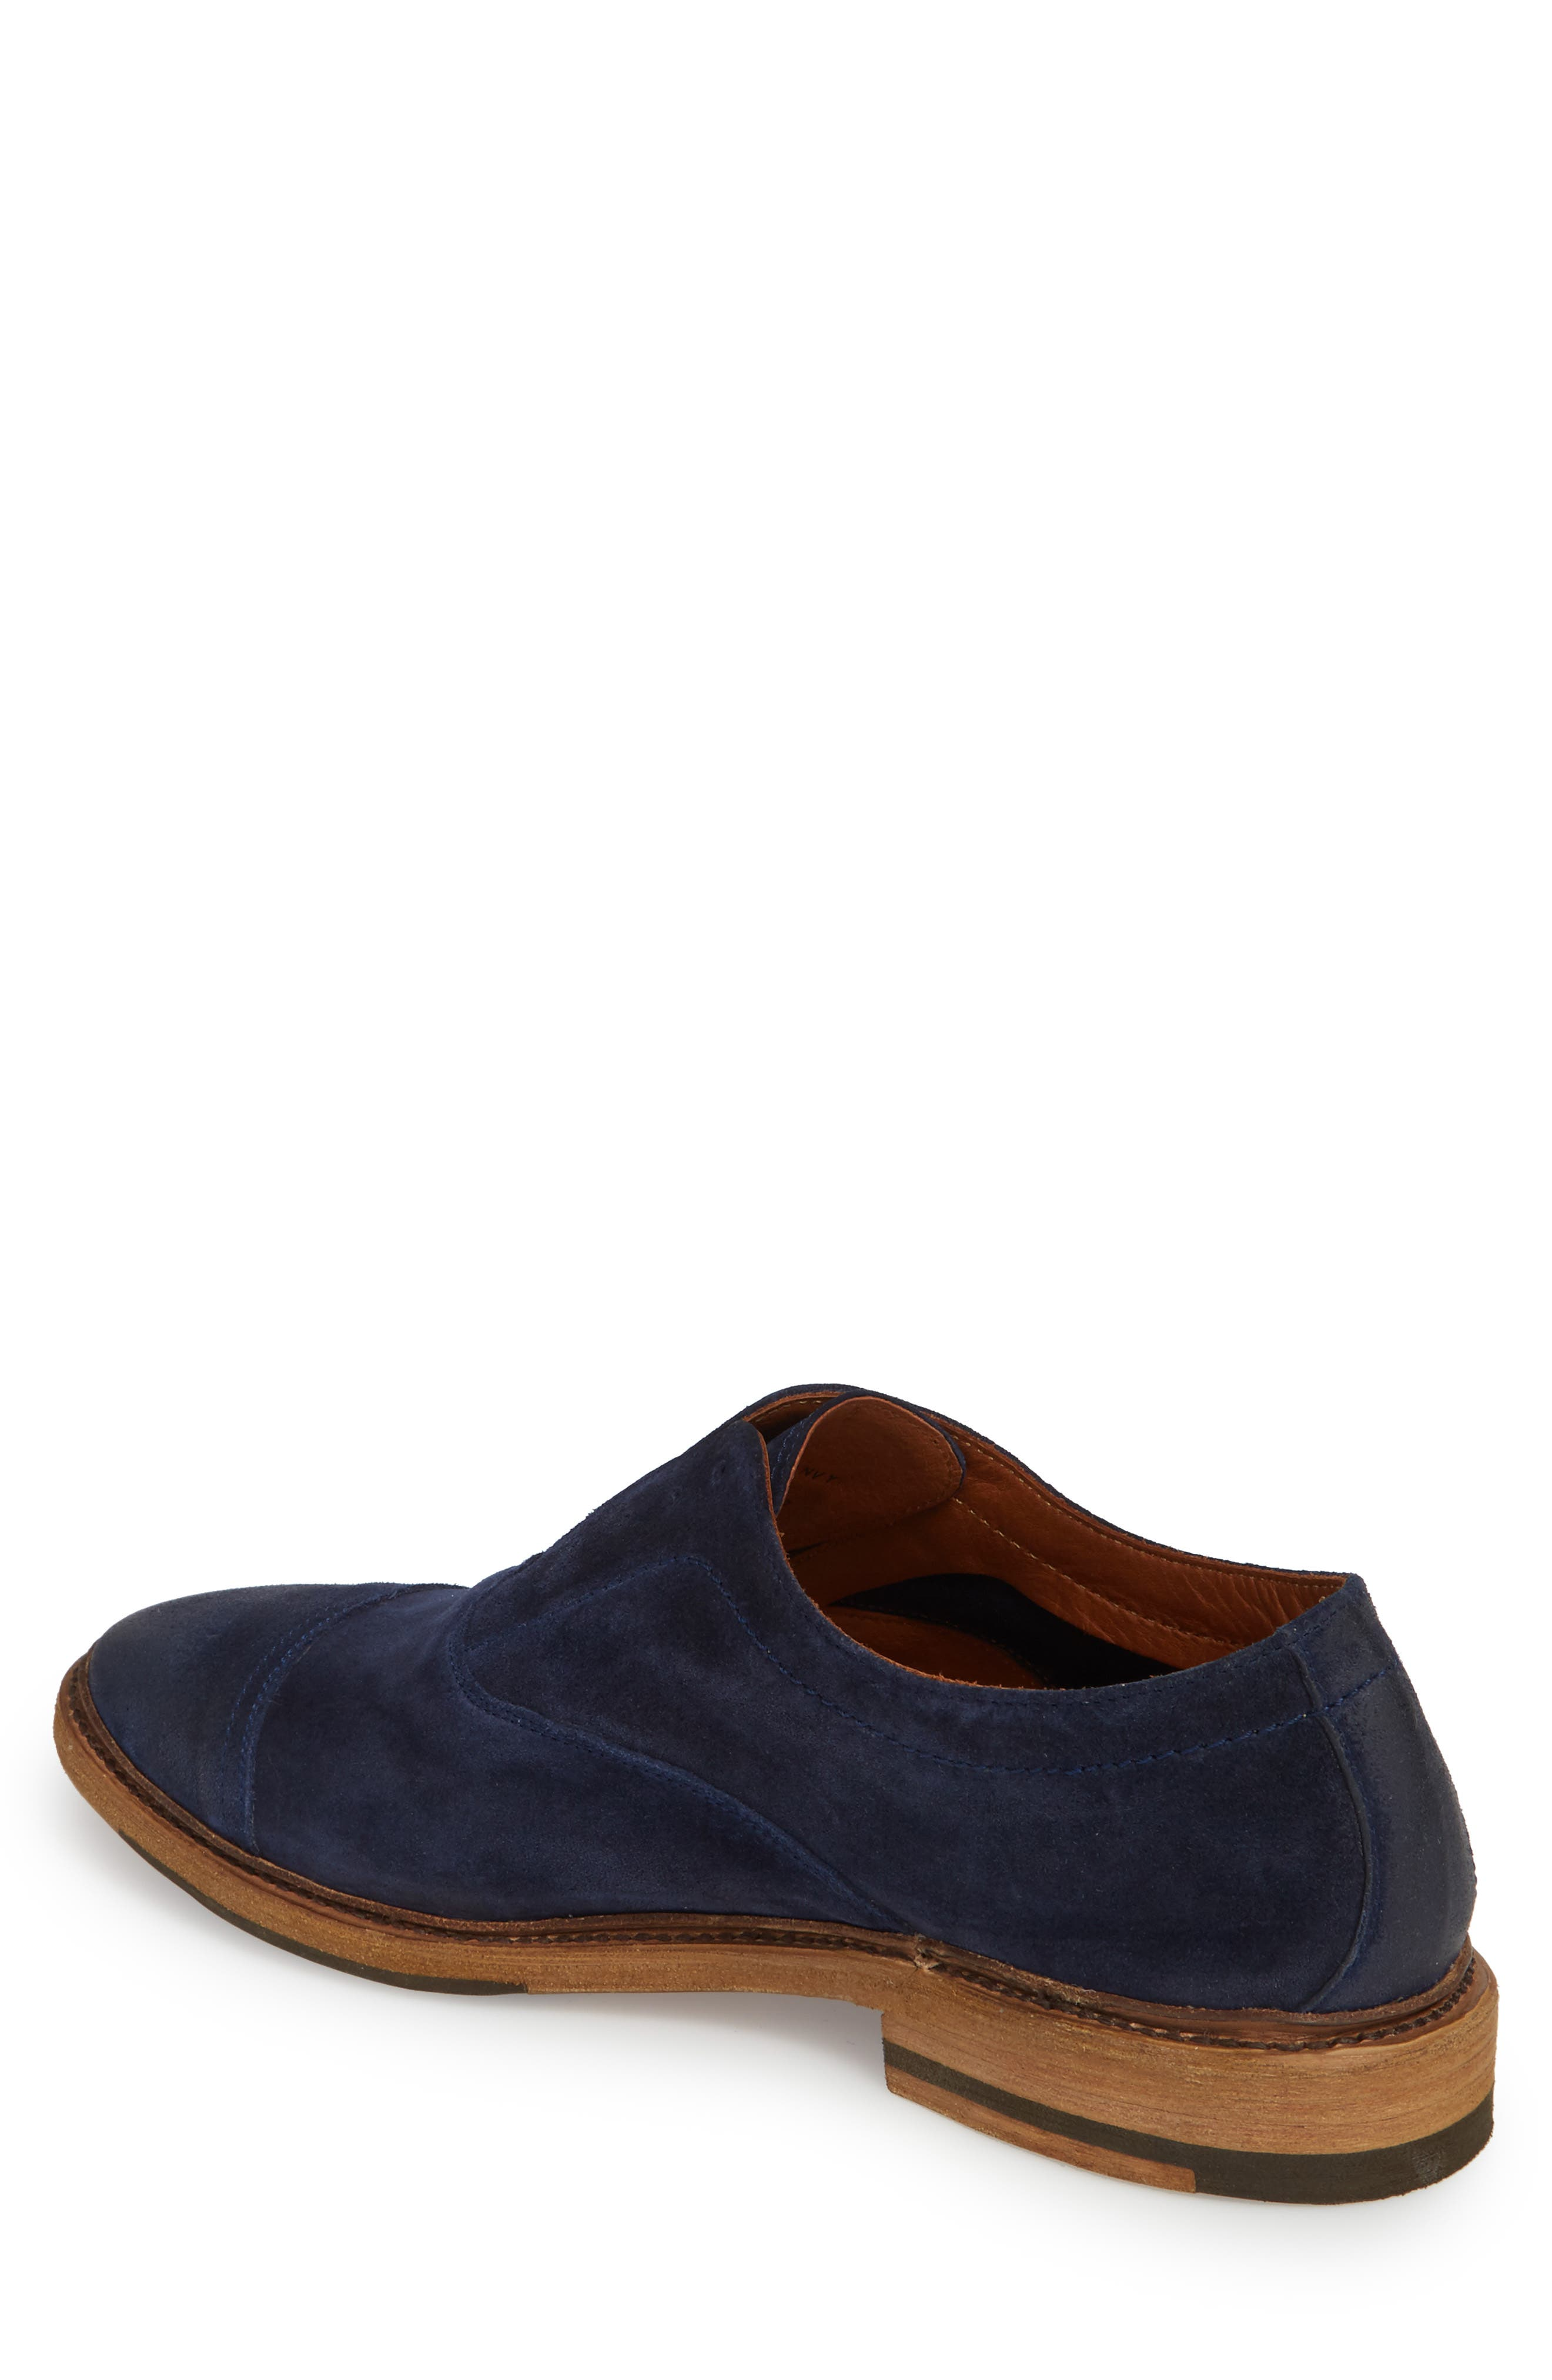 Paul Bal Cap Toe Oxford,                             Alternate thumbnail 2, color,                             Navy Suede